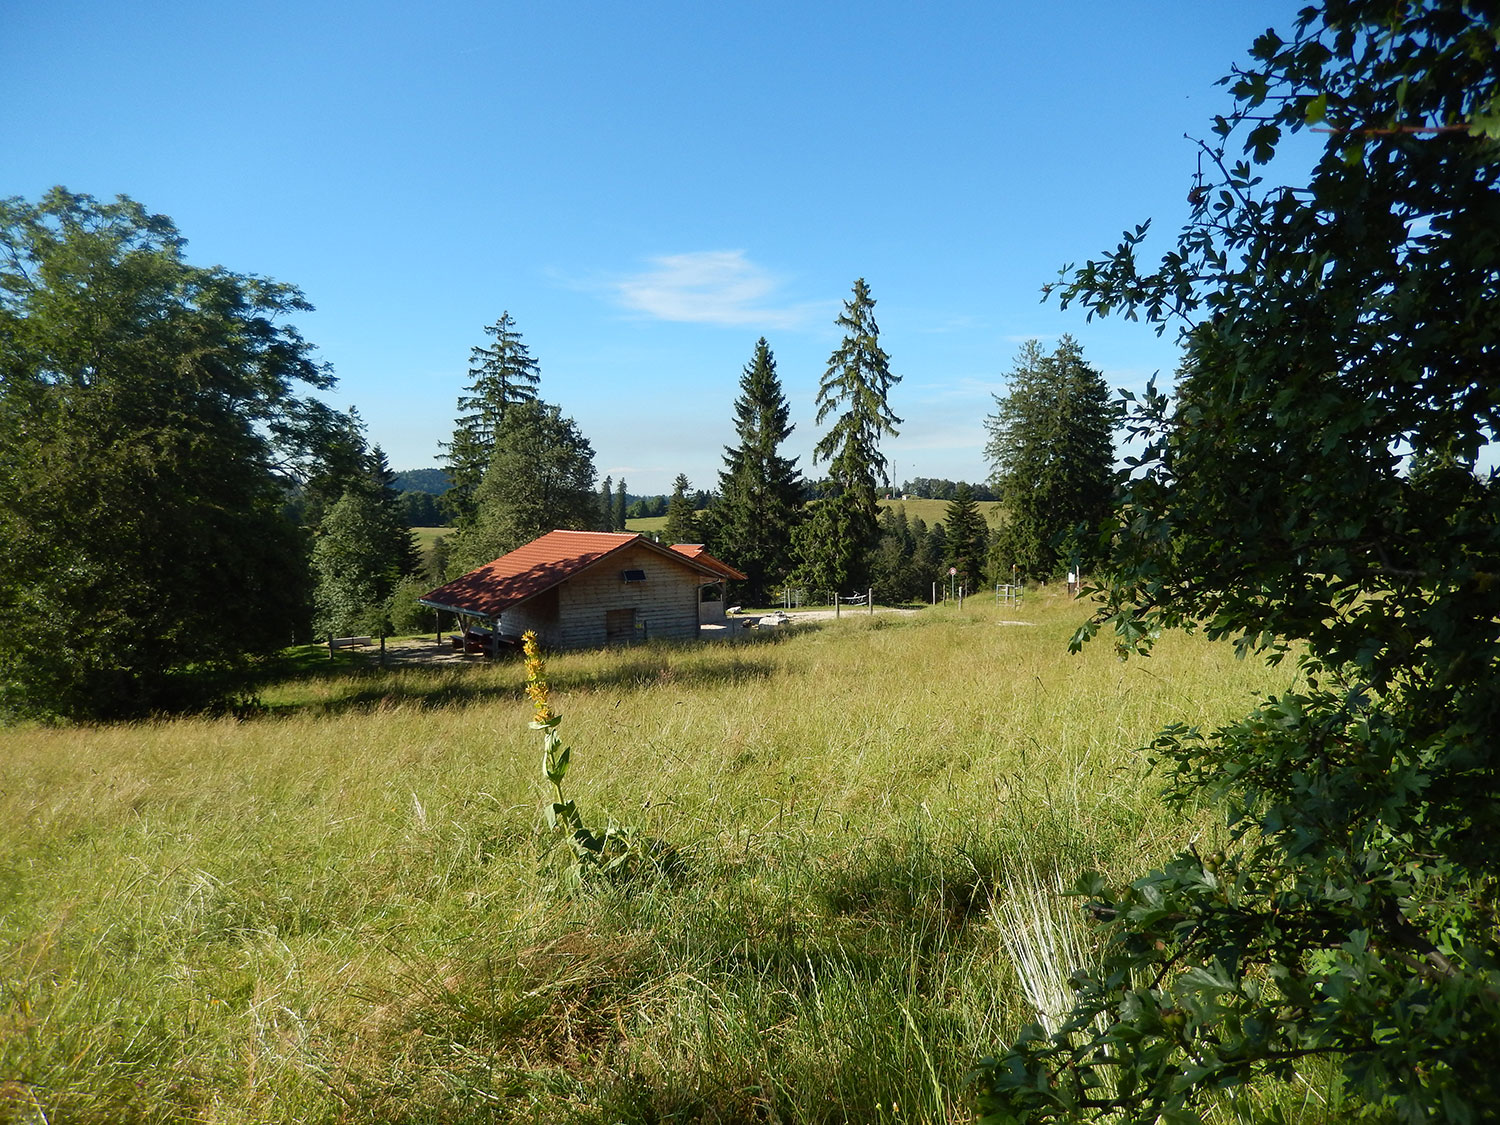 cabane-forestiere-saulcy-jura-suisse-8